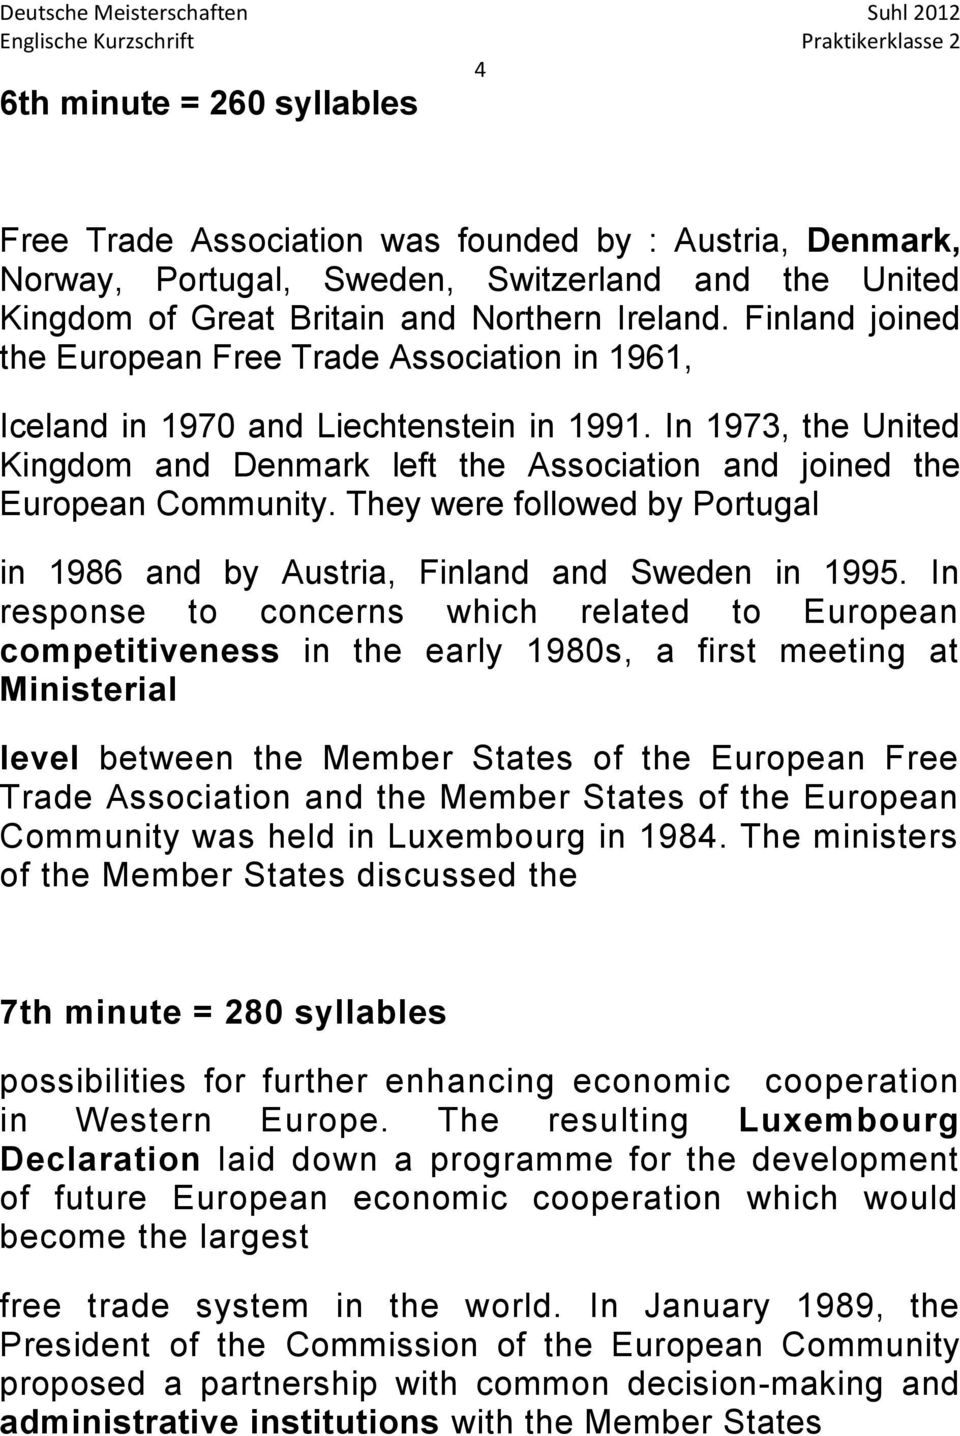 In 1973, the United Kingdom and Denmark left the Association and joined the European Community. They were followed by Portugal in 1986 and by Austria, Finland and Sweden in 1995.